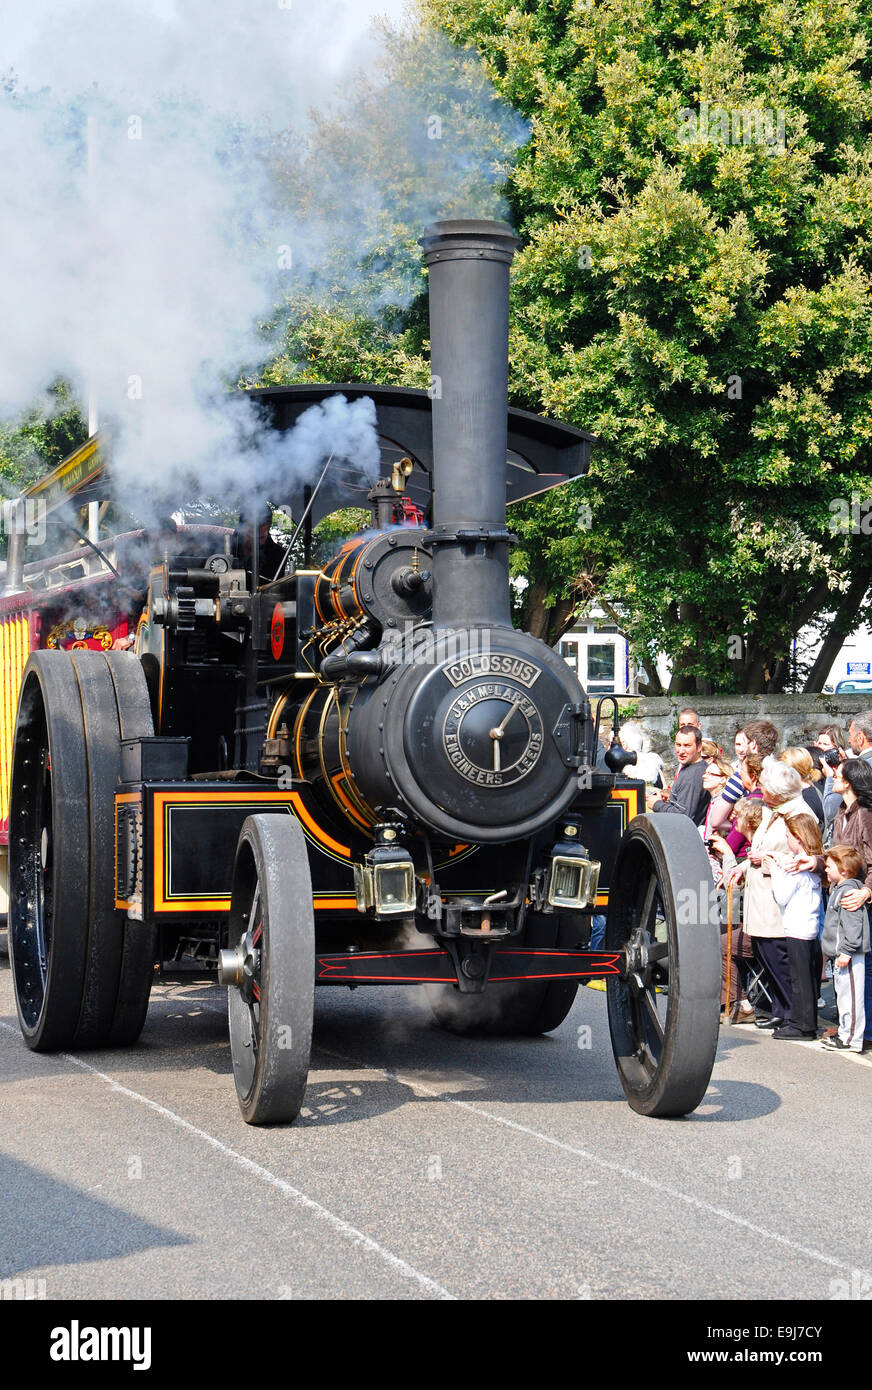 A ' Colossus ' traction engine in Camborne, Cornwall, UK, during the Trevithick day parade of steam. - Stock Image